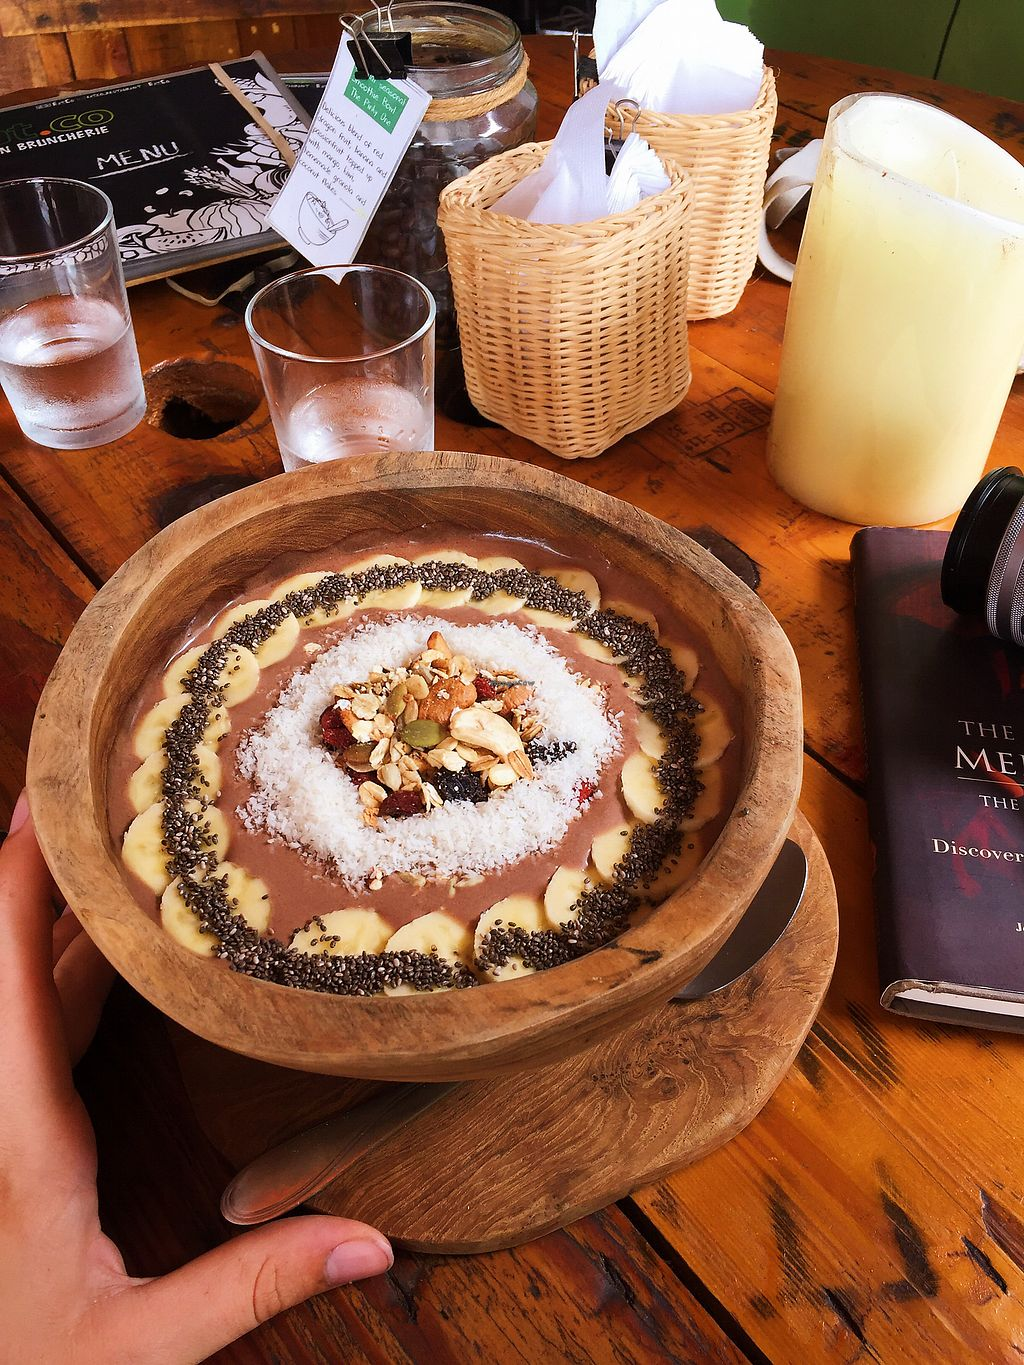 """Photo of Eat Co 2  by <a href=""""/members/profile/candidlylisa"""">candidlylisa</a> <br/>Choco smoothie Bowl <br/> November 28, 2017  - <a href='/contact/abuse/image/44676/329929'>Report</a>"""